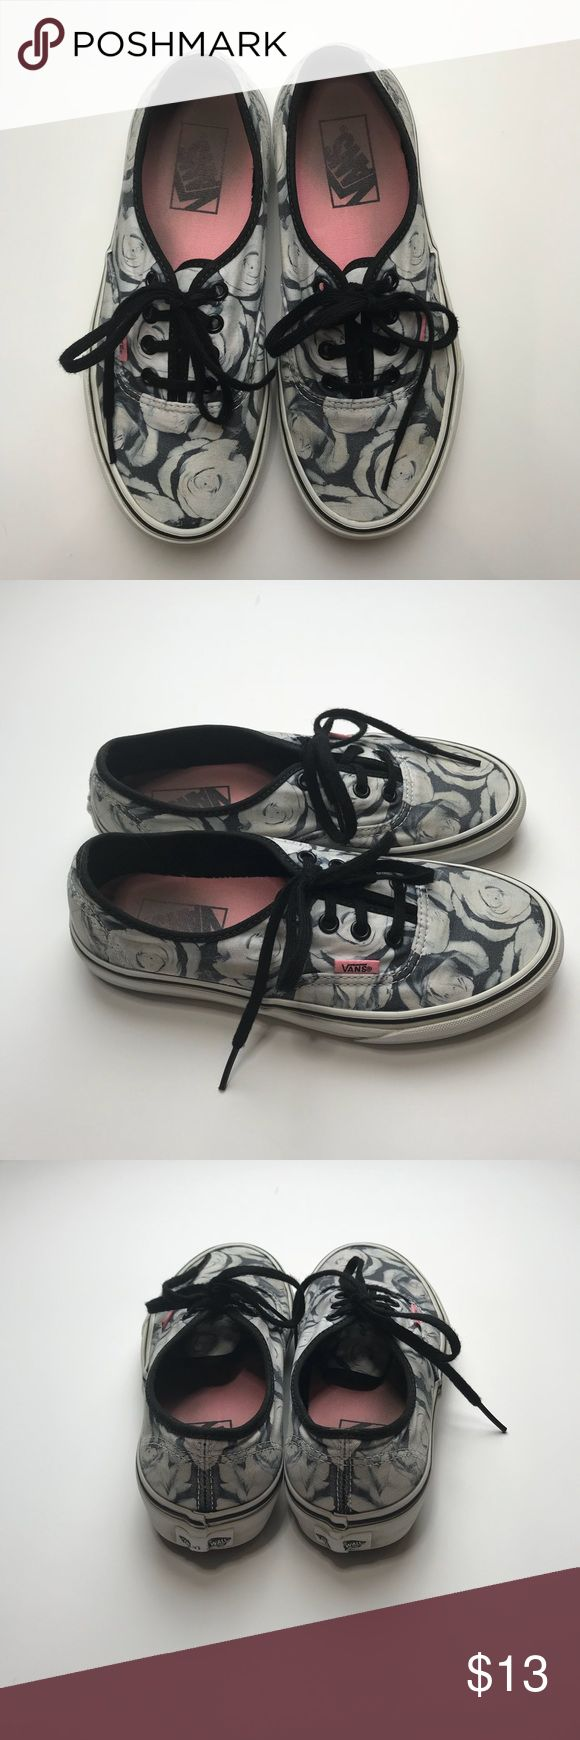 Floral Vans Floral Vans Vans Shoes Sneakers